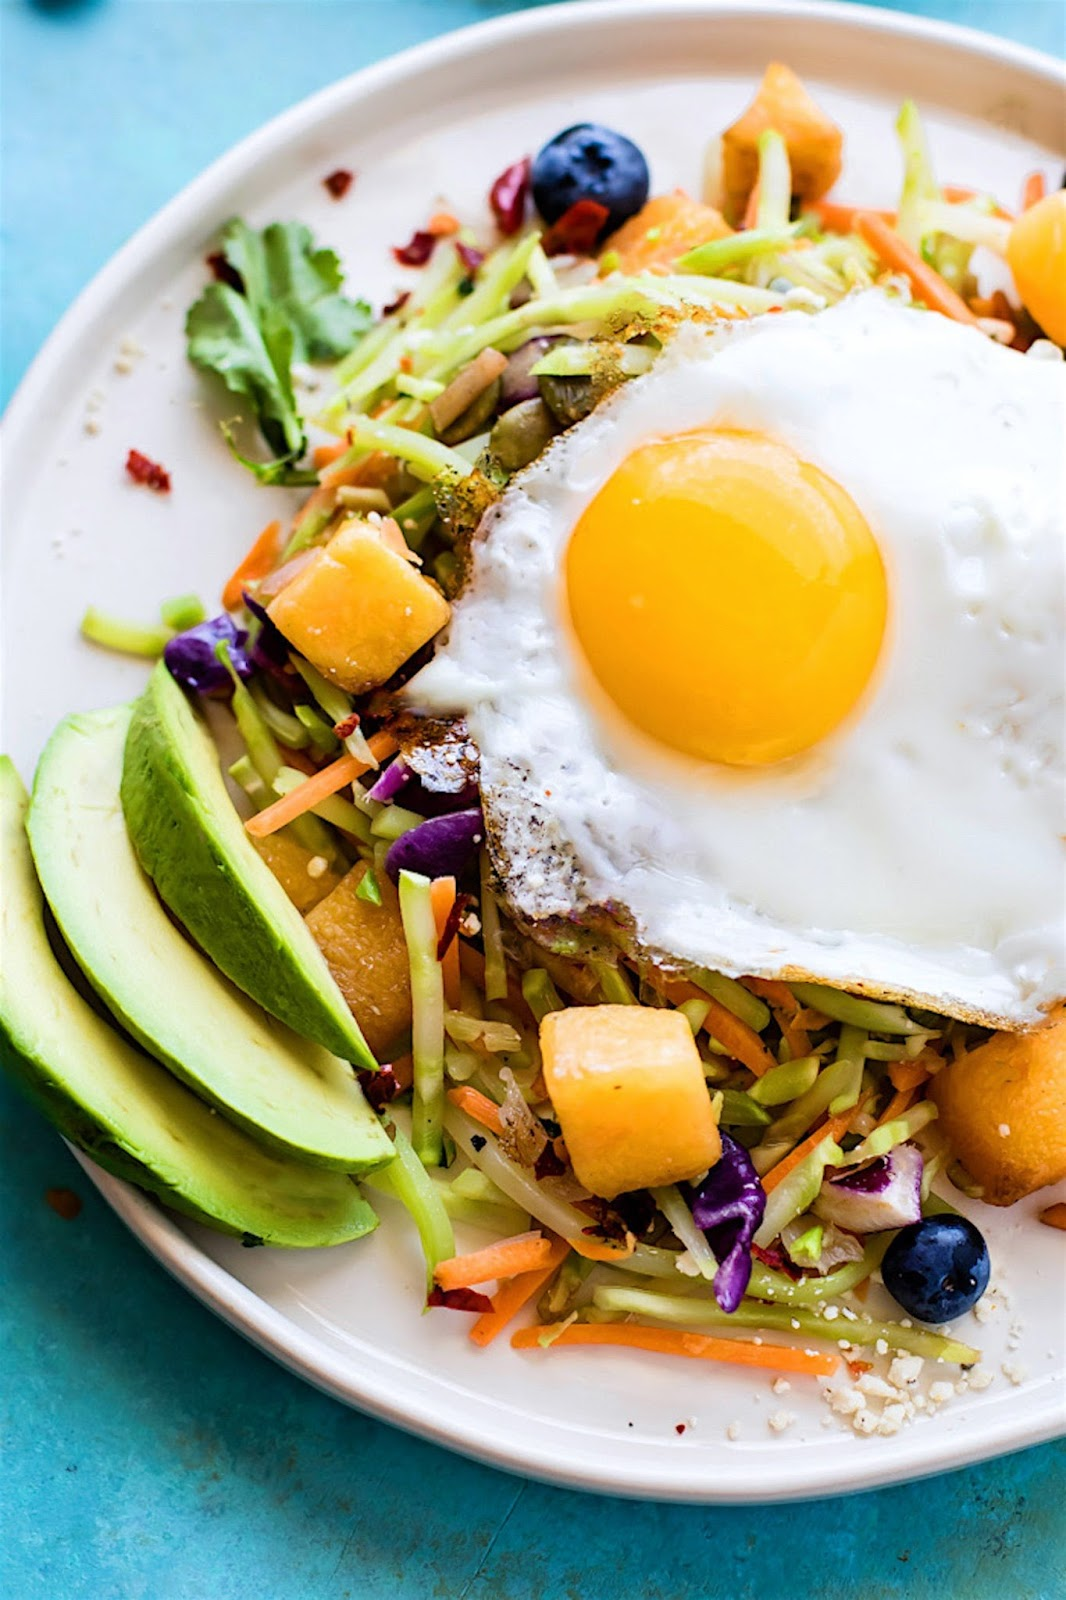 Nourishing Paleo Warm Breakfast Salad A hearty breakfast is best way to start the day! Create healthy swaps by replacing hash browns or white potatoes with broccoli slaw, squash, and even blueberries!